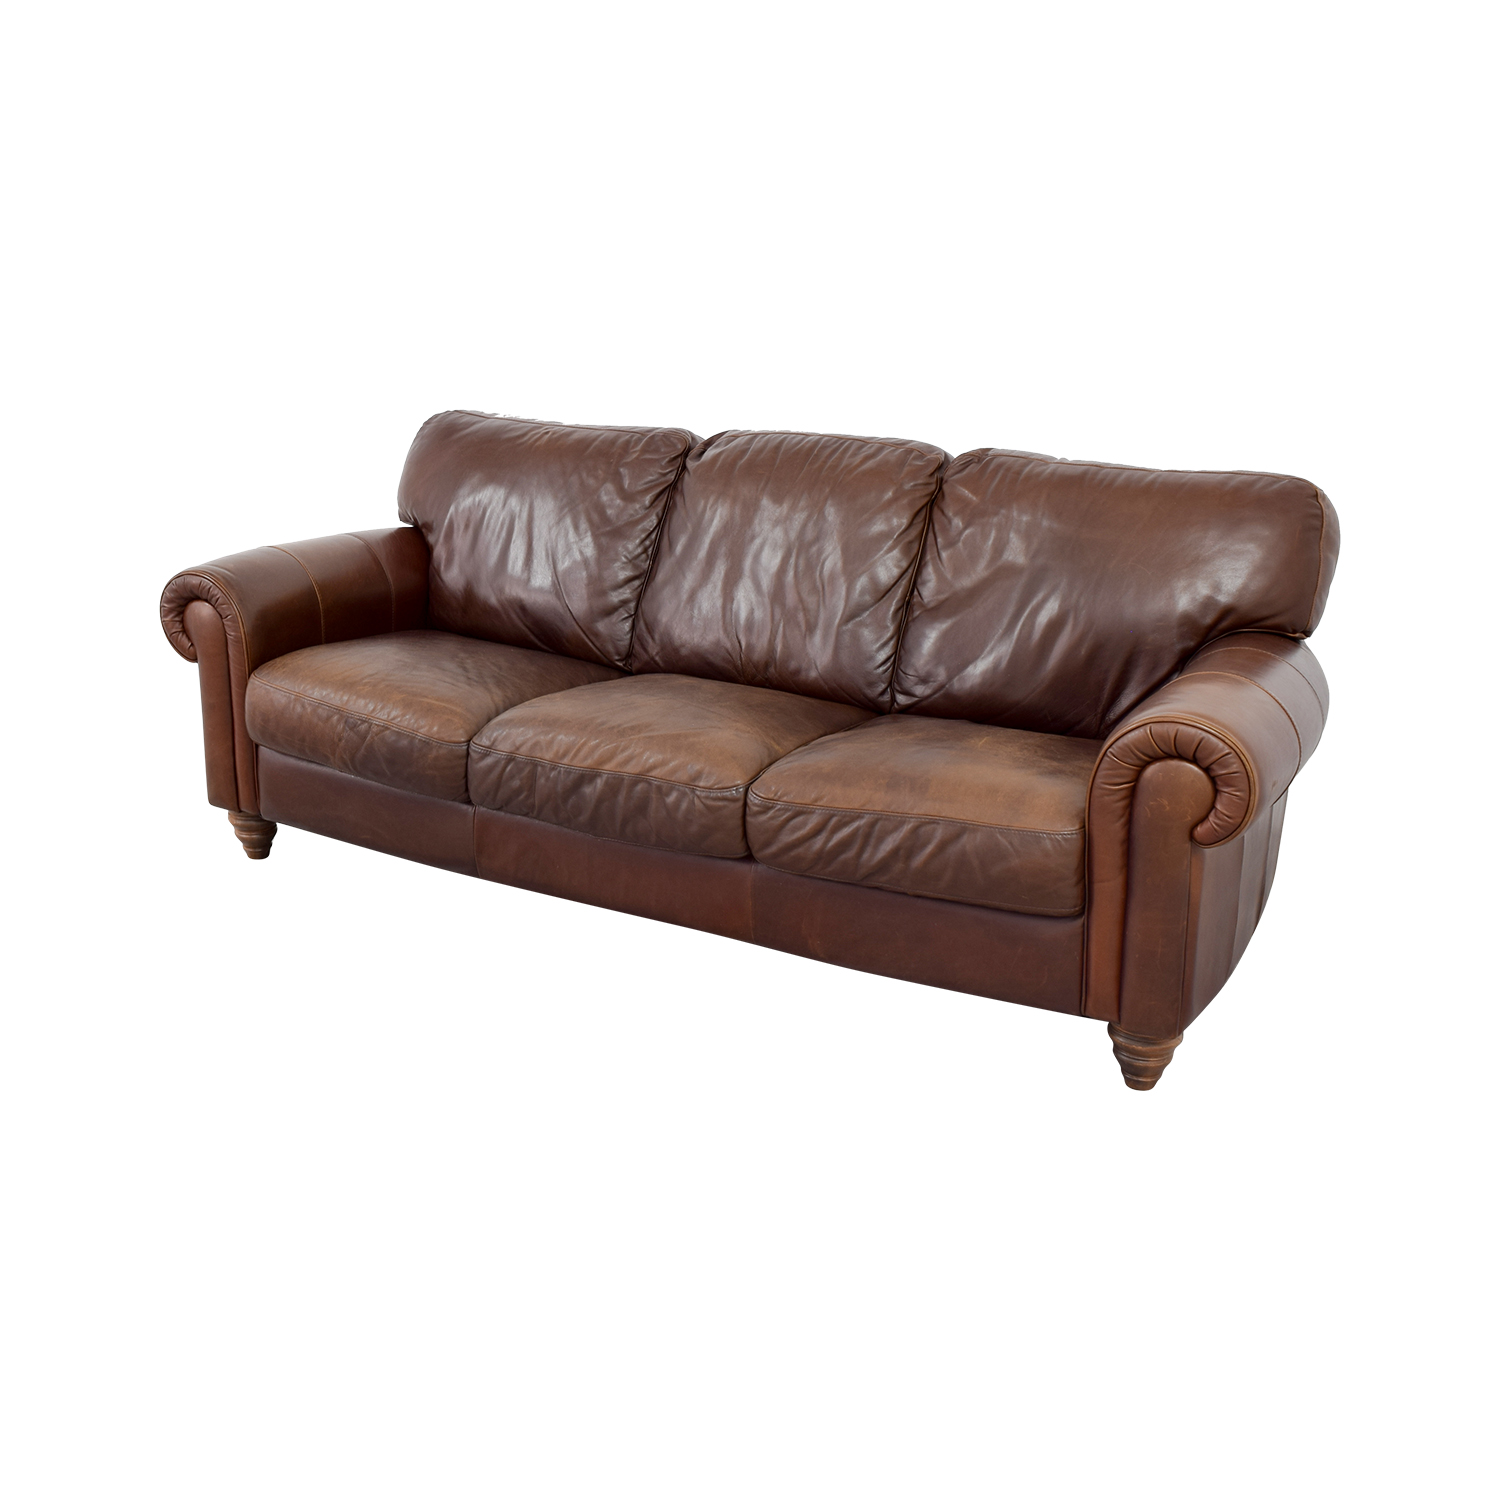 ... Buy Brown Three Cushion Leather Couch ...